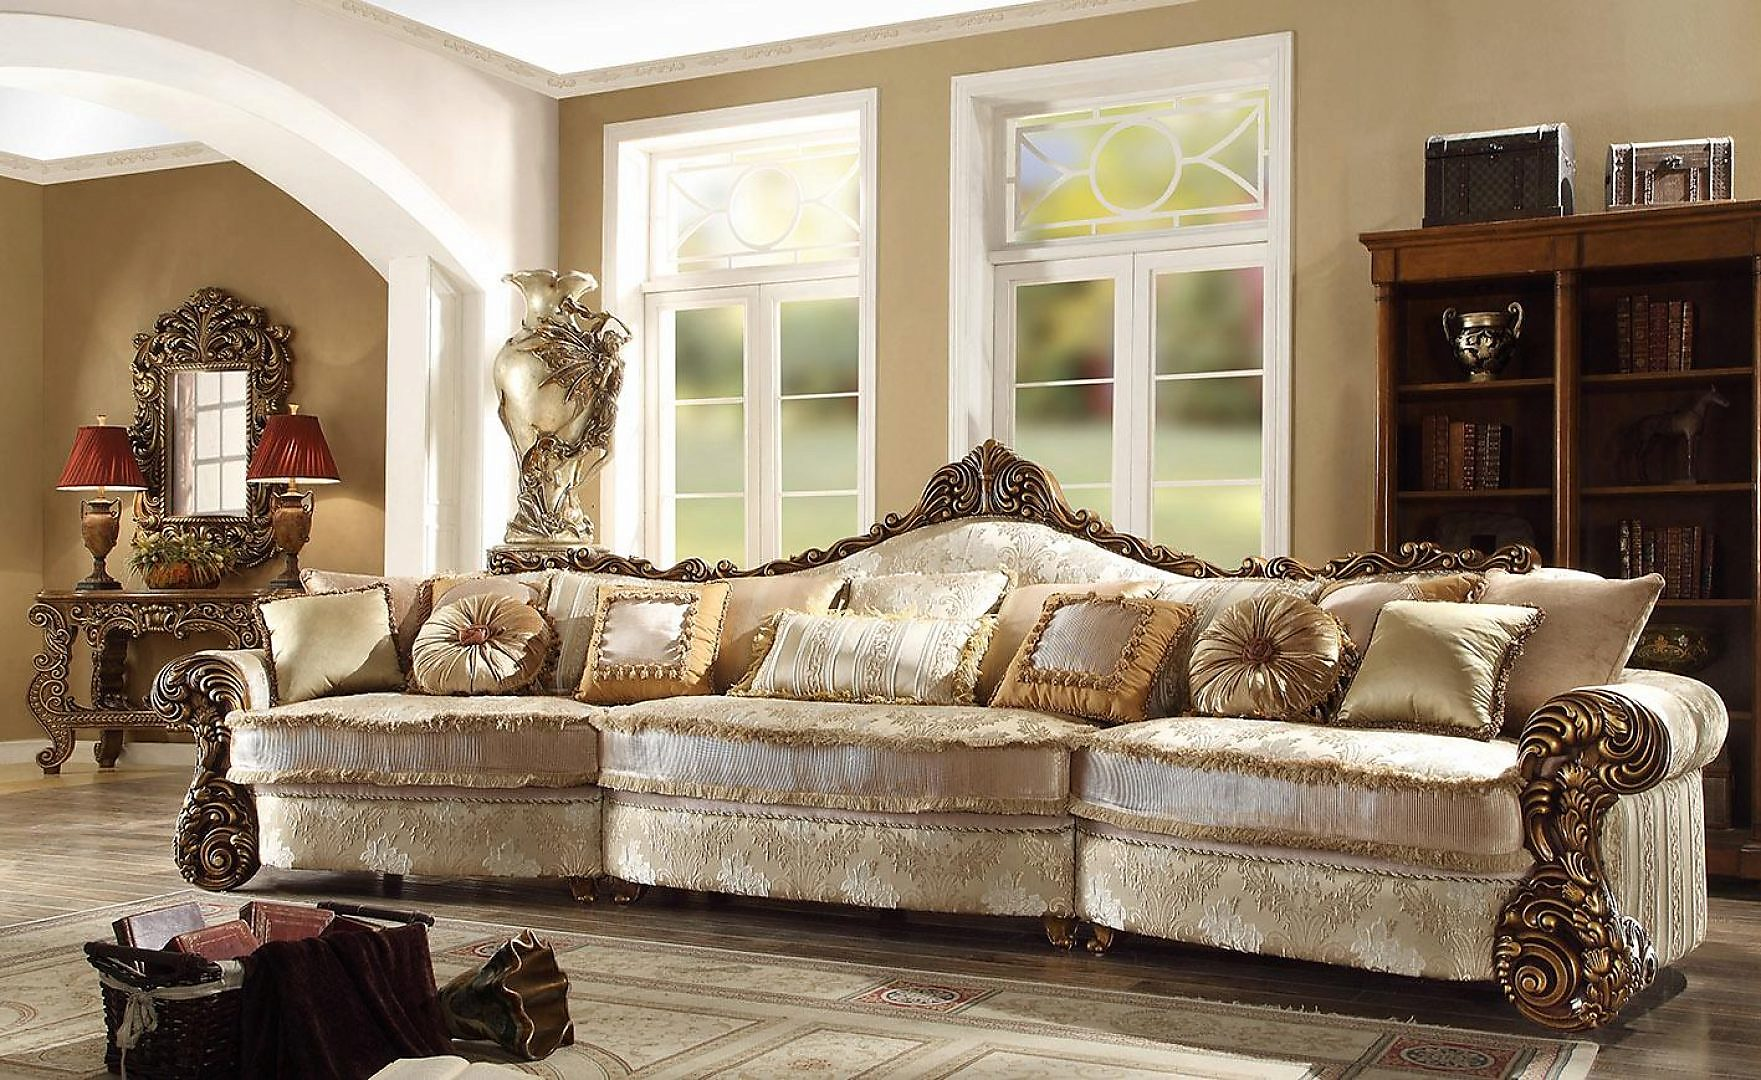 Traditional HD-1608 Sectional Sofa and Two Chairs Living Room Set 3Pcs by Homey Design